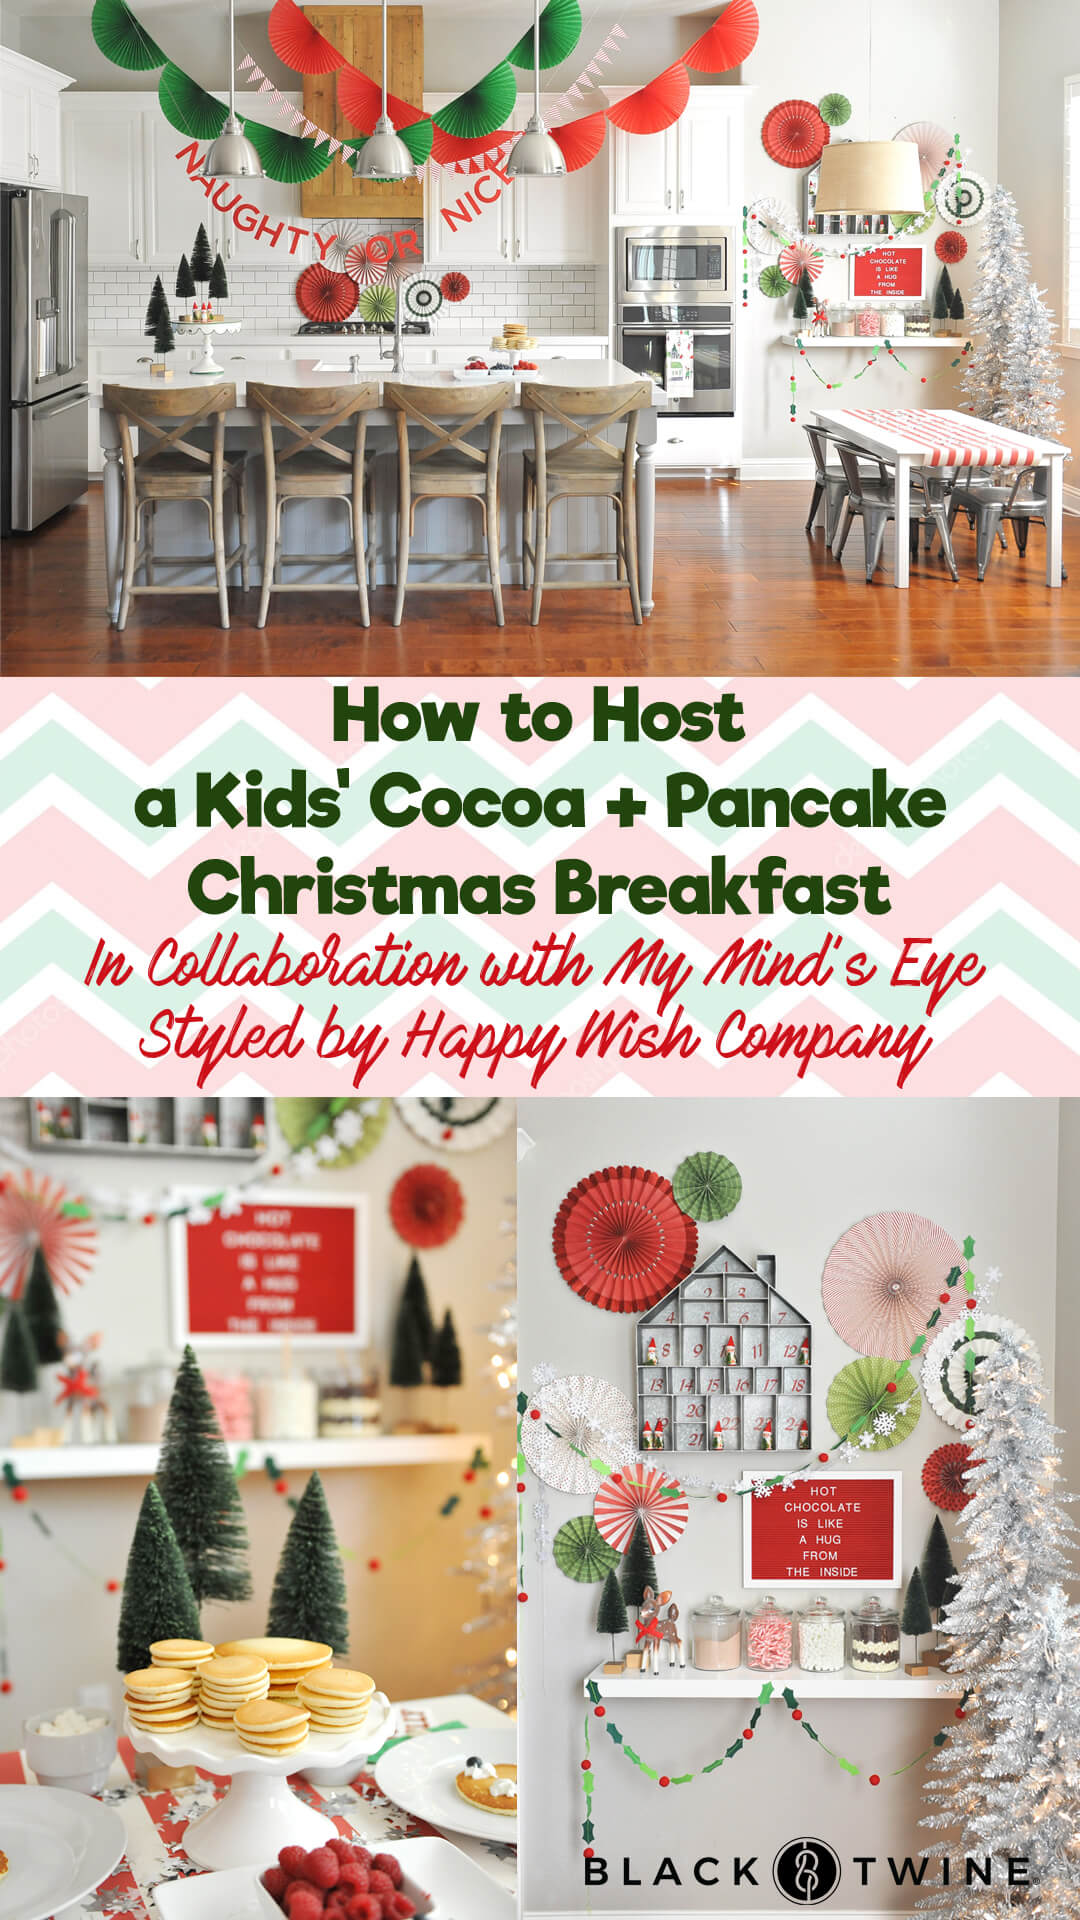 Tablescape from Kids' Cocoa + Pancake Christmas Breakfast Styled by Happy Wish Company | Black Twine